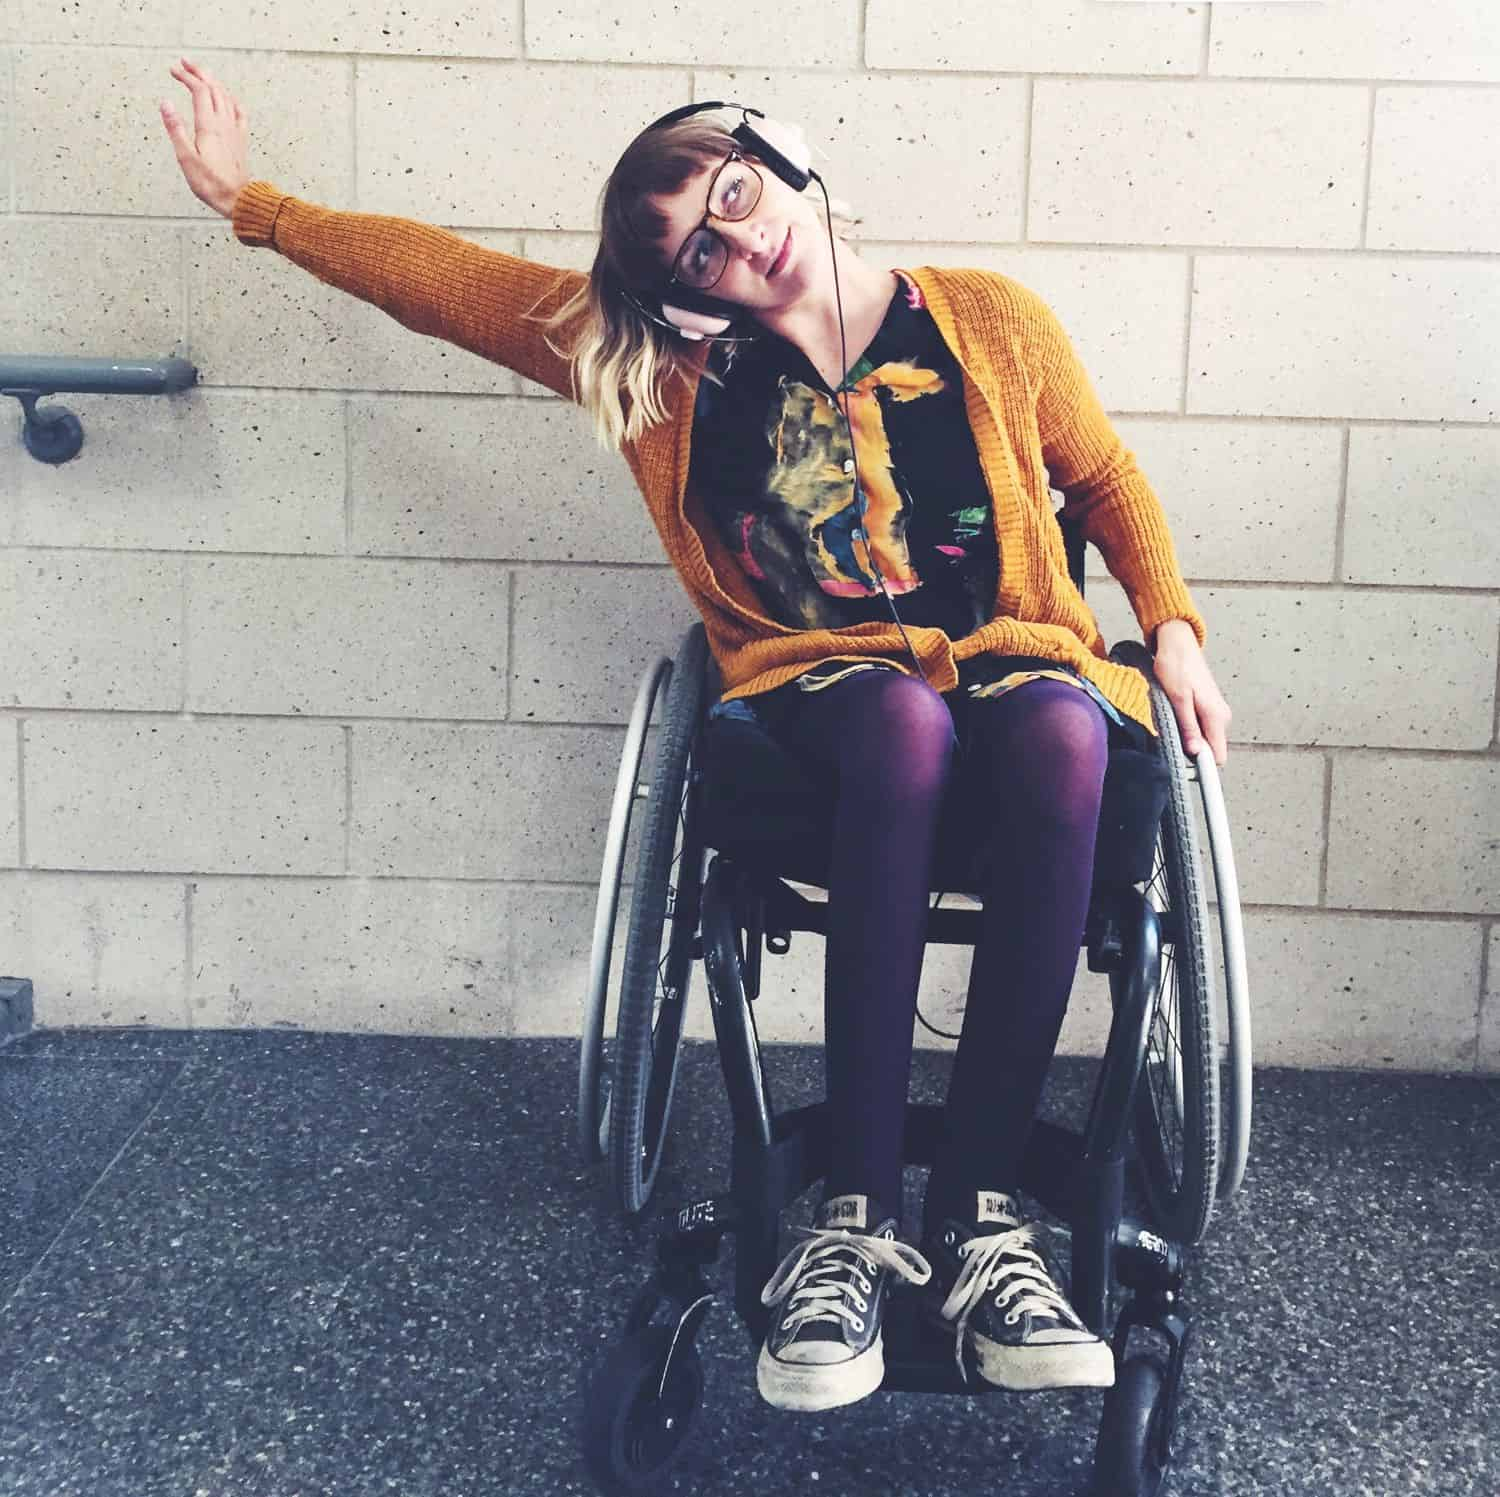 Every body deserves beautiful photographs. Meet one woman with a wheelchair whose photos prove that cameras can't discriminate.